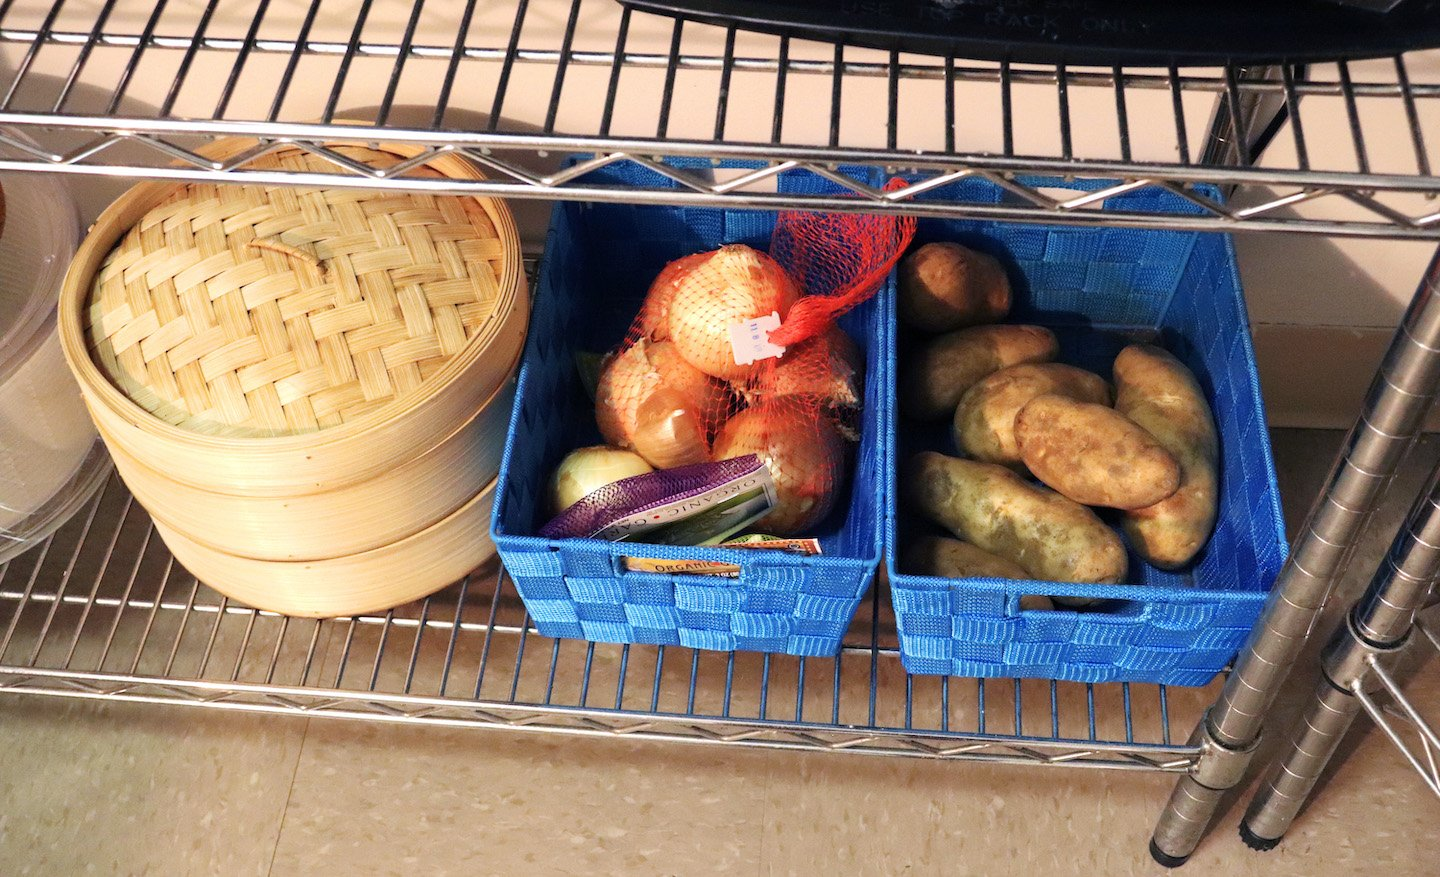 Potato & Onion Basket Storage